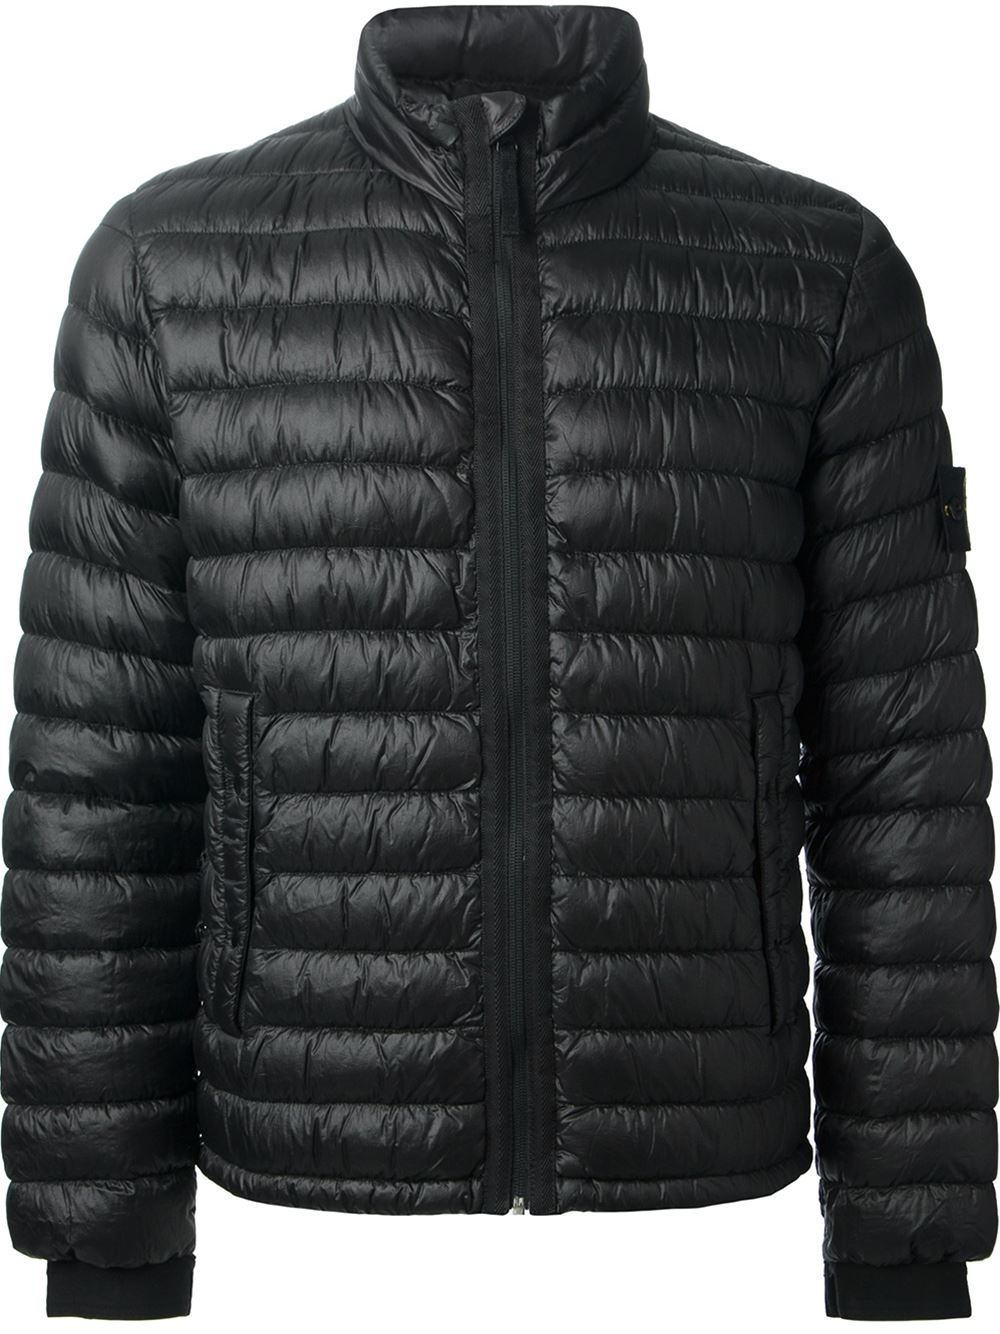 Stone Island Padded Jacket In Black For Men Lyst